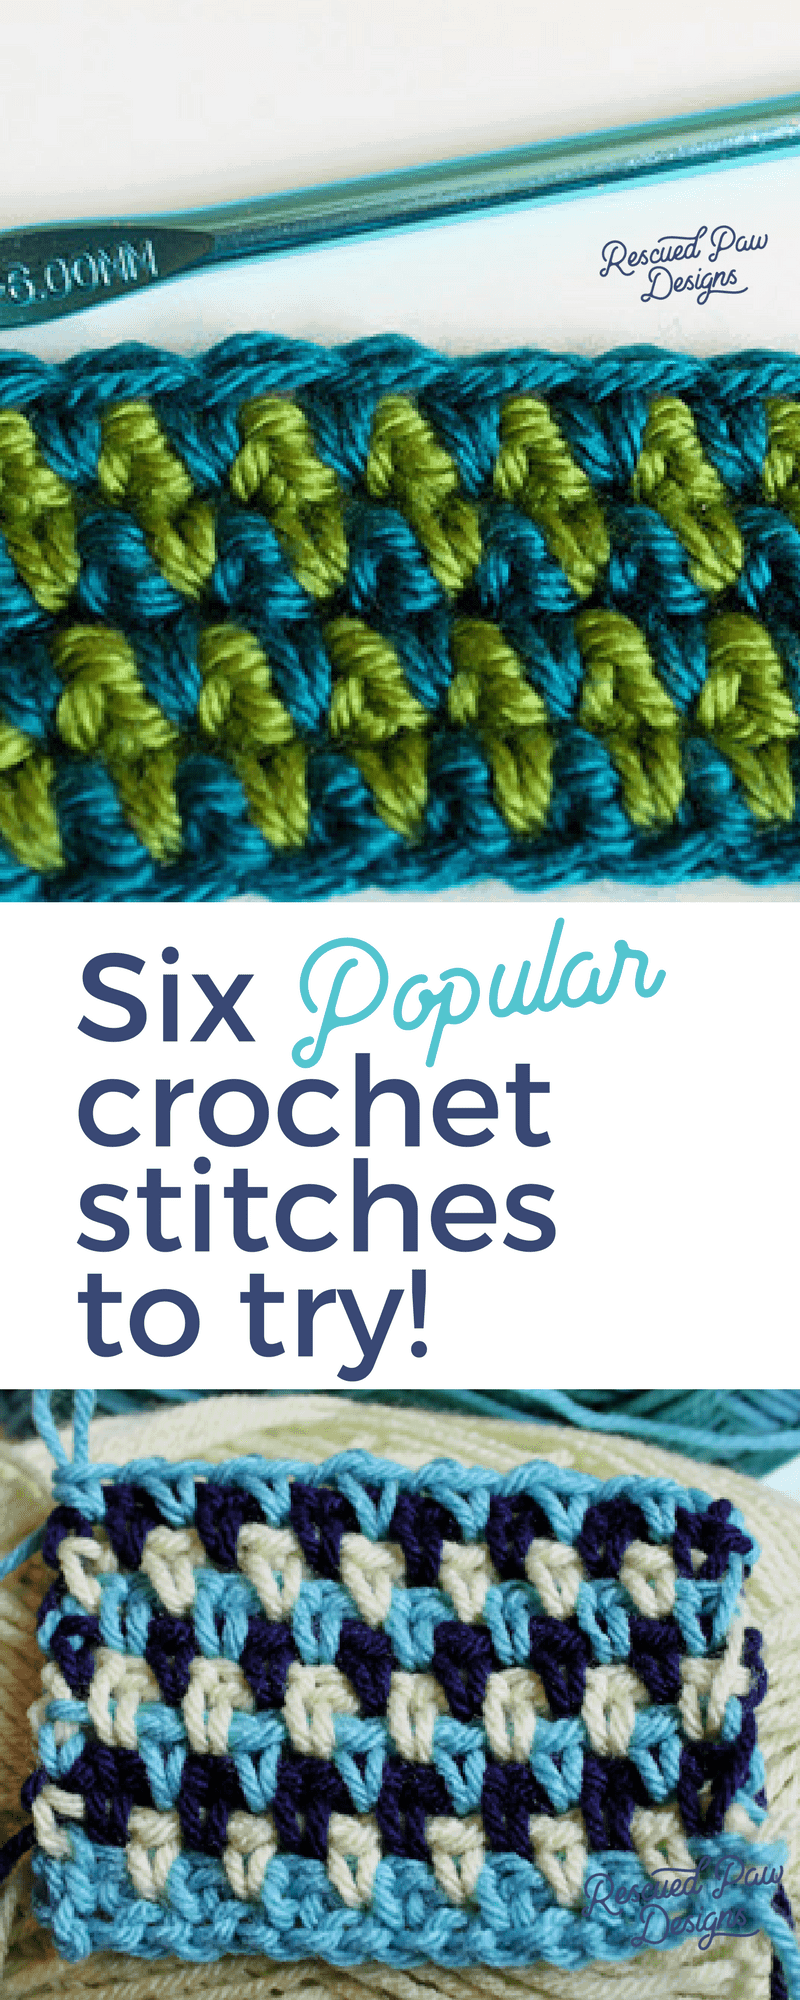 Easy Crochet Stitches to Learn Today!